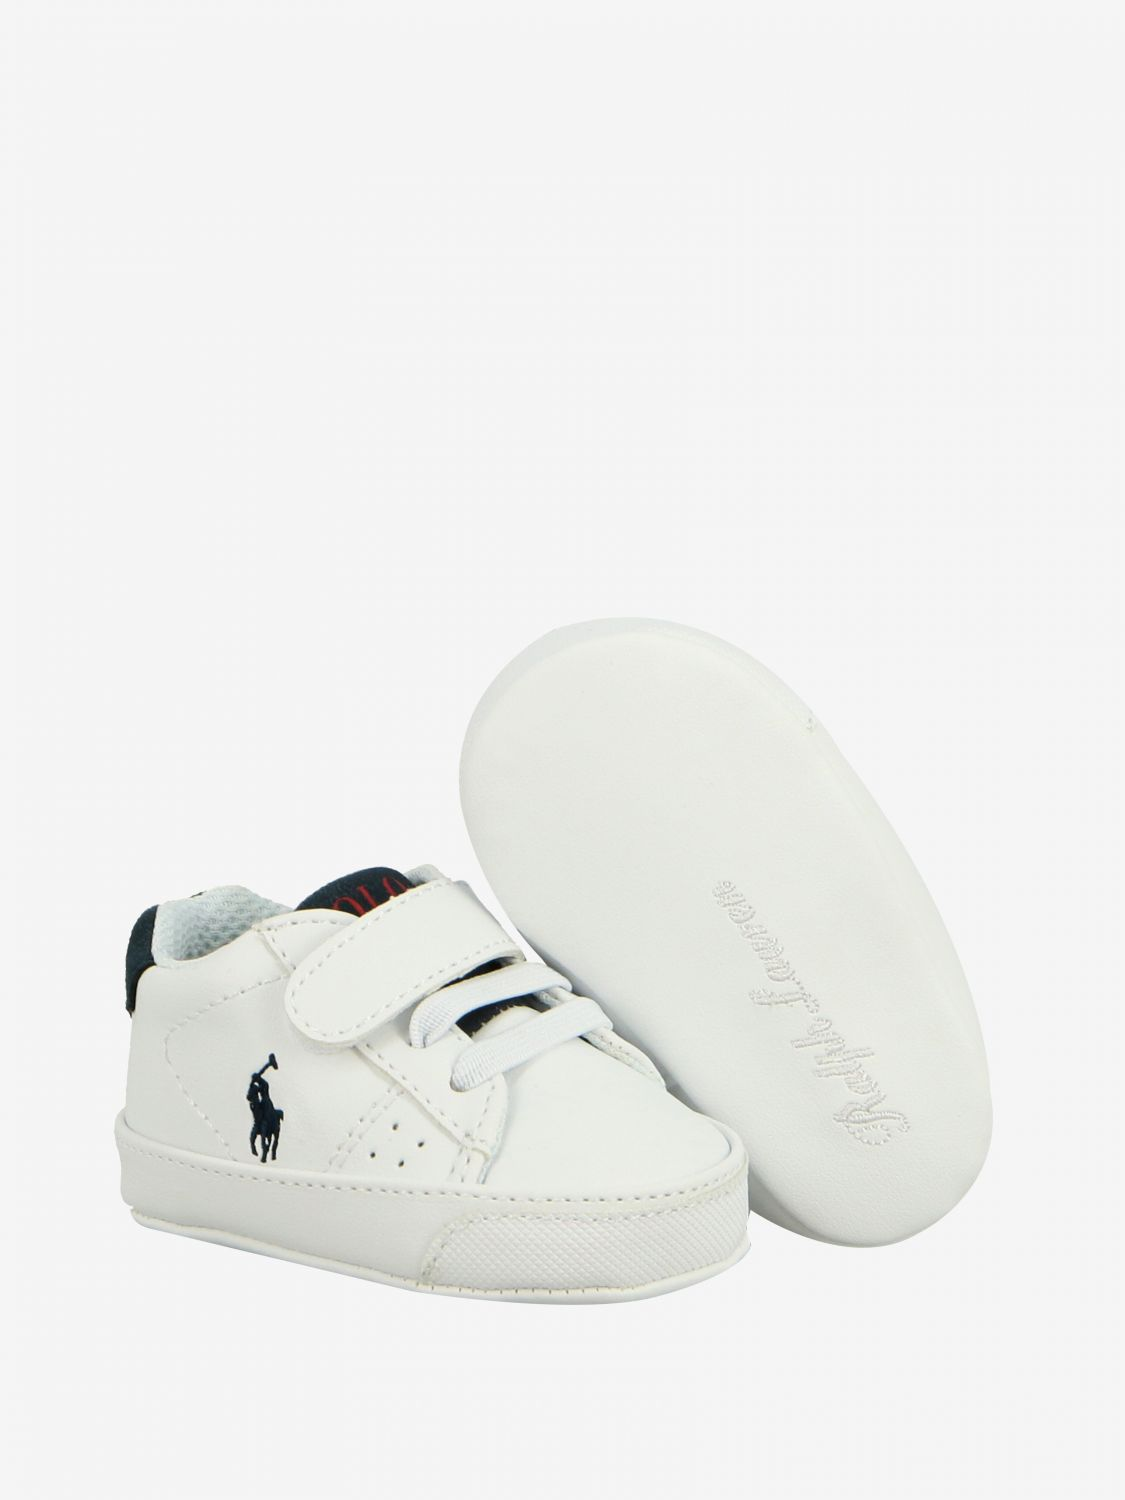 Shoes kids Polo Ralph Lauren white 2